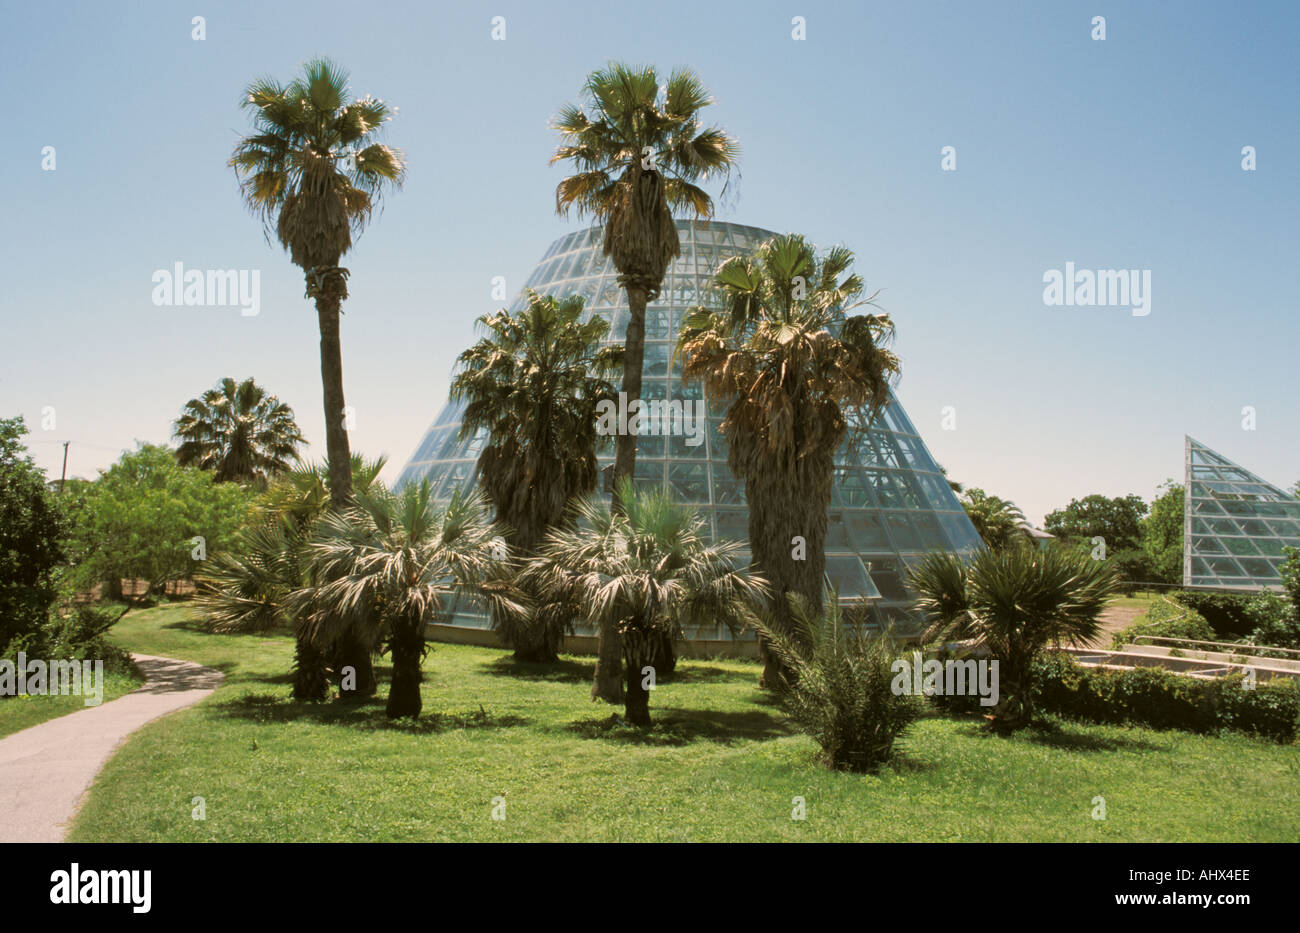 San Antonio Texas Usa Botanical Garden Conservatory Palm